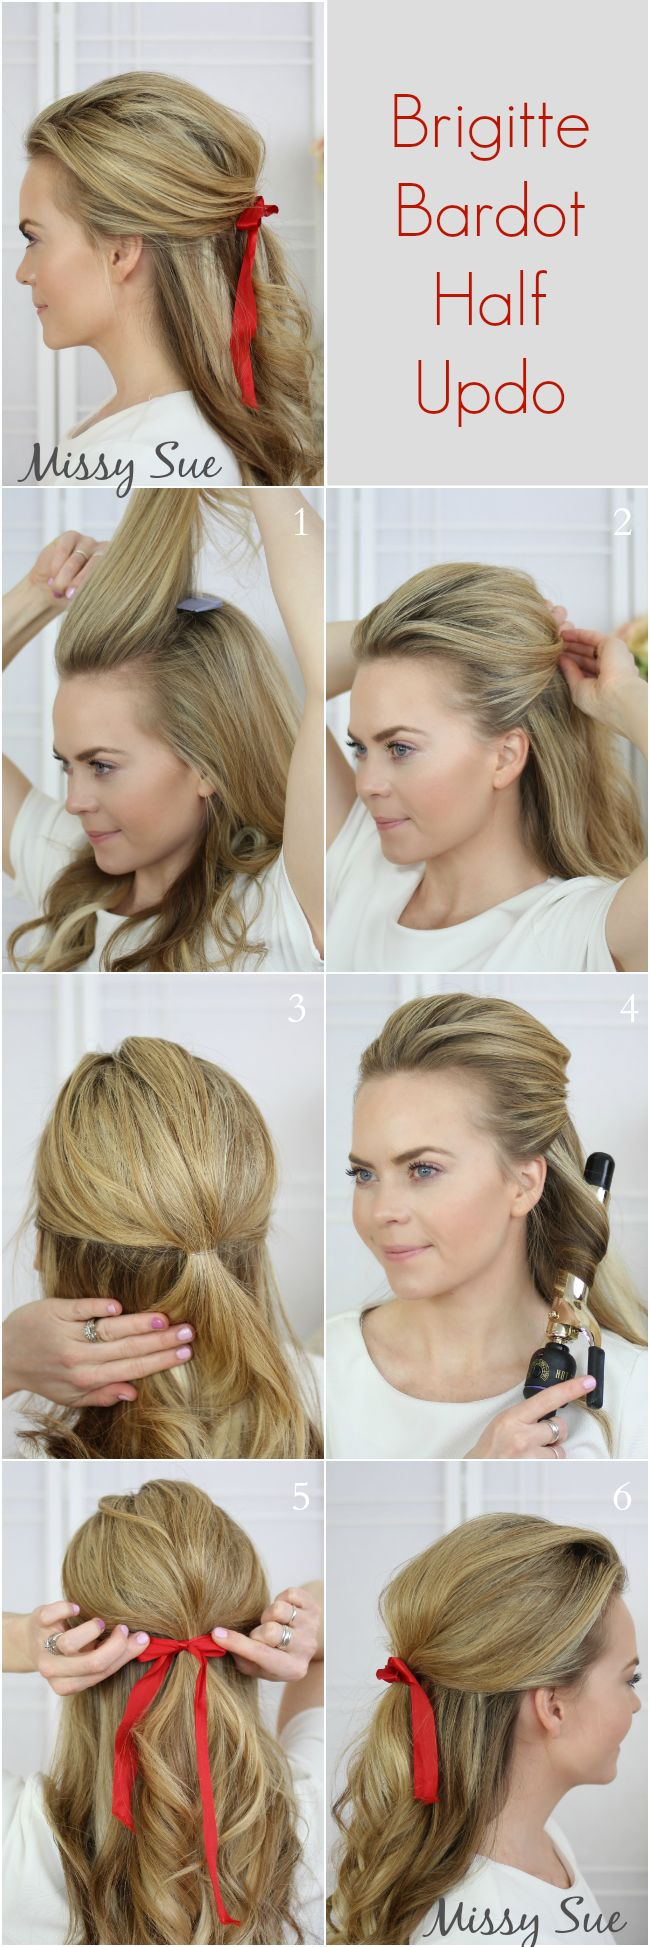 Brigitte Bardot Half Updo! Try it with new 1907 combs!  http://www.frommbeauty.com/shop/product/